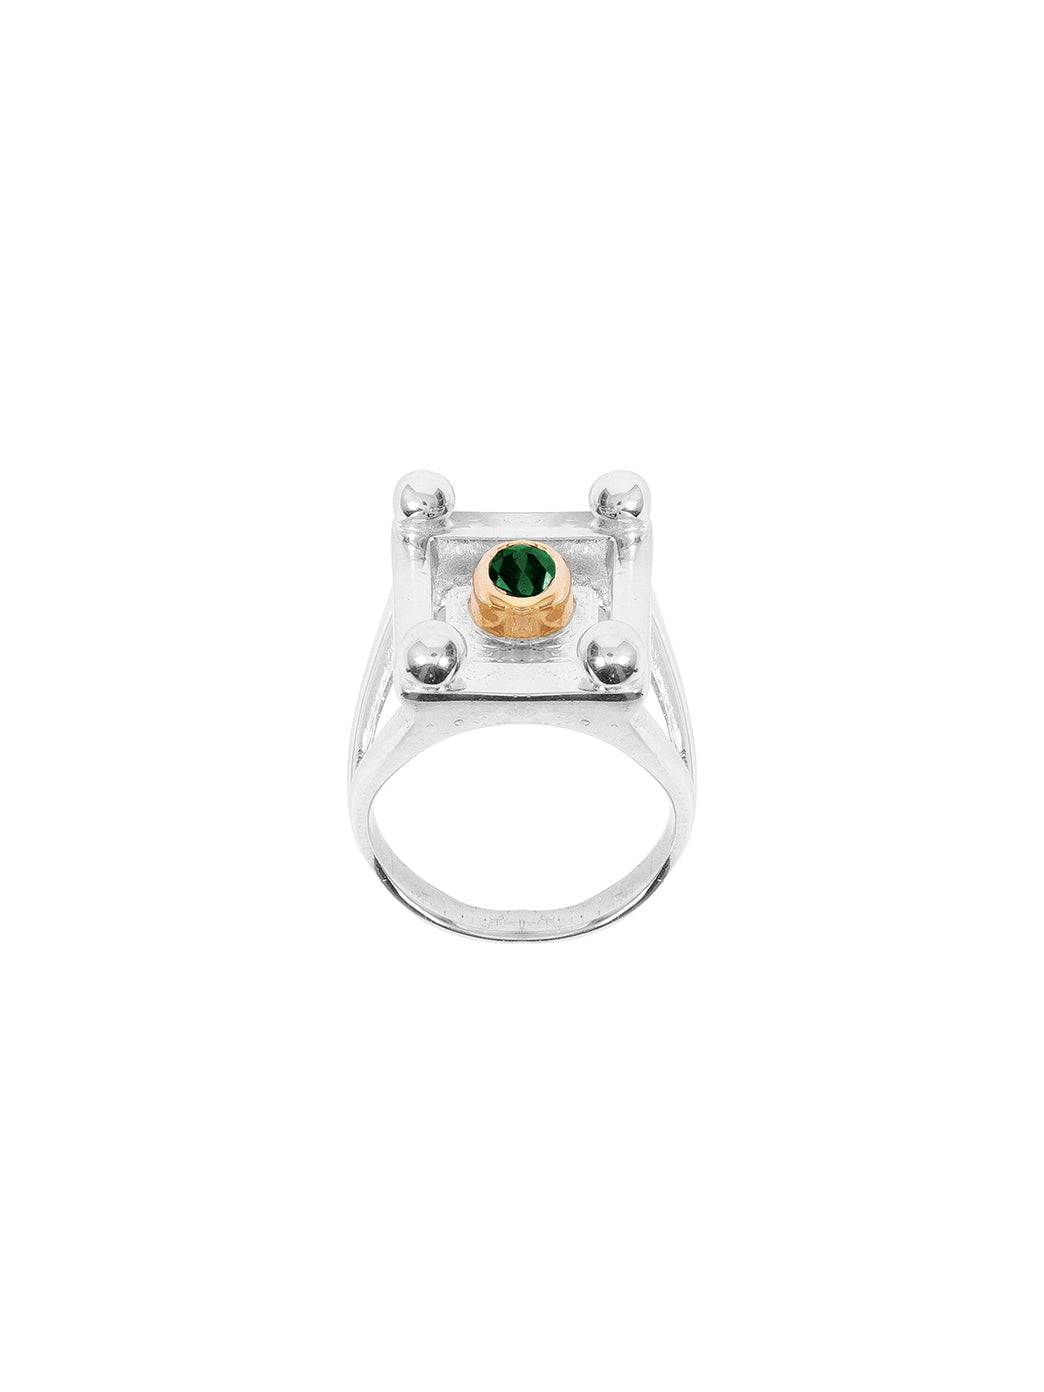 Fiorina Jewellery College Ring Emerald Top Side